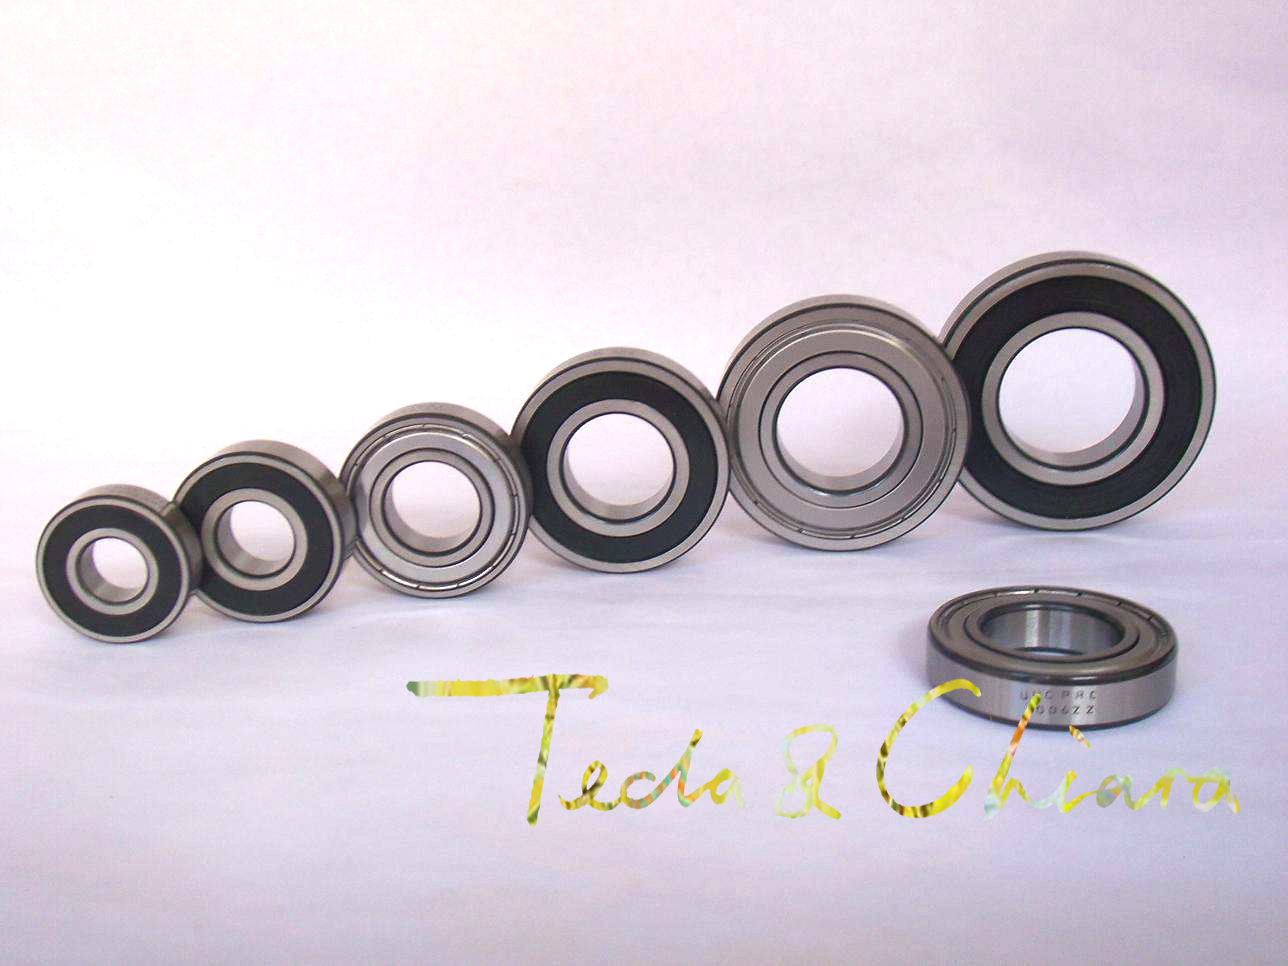 697 697ZZ 697RS 697-2Z 697Z 697-2RS ZZ RS RZ 2RZ Deep Groove Ball Bearings 7 x 17 x 5mm High Quality gcr15 6328 zz or 6328 2rs 140x300x62mm high precision deep groove ball bearings abec 1 p0